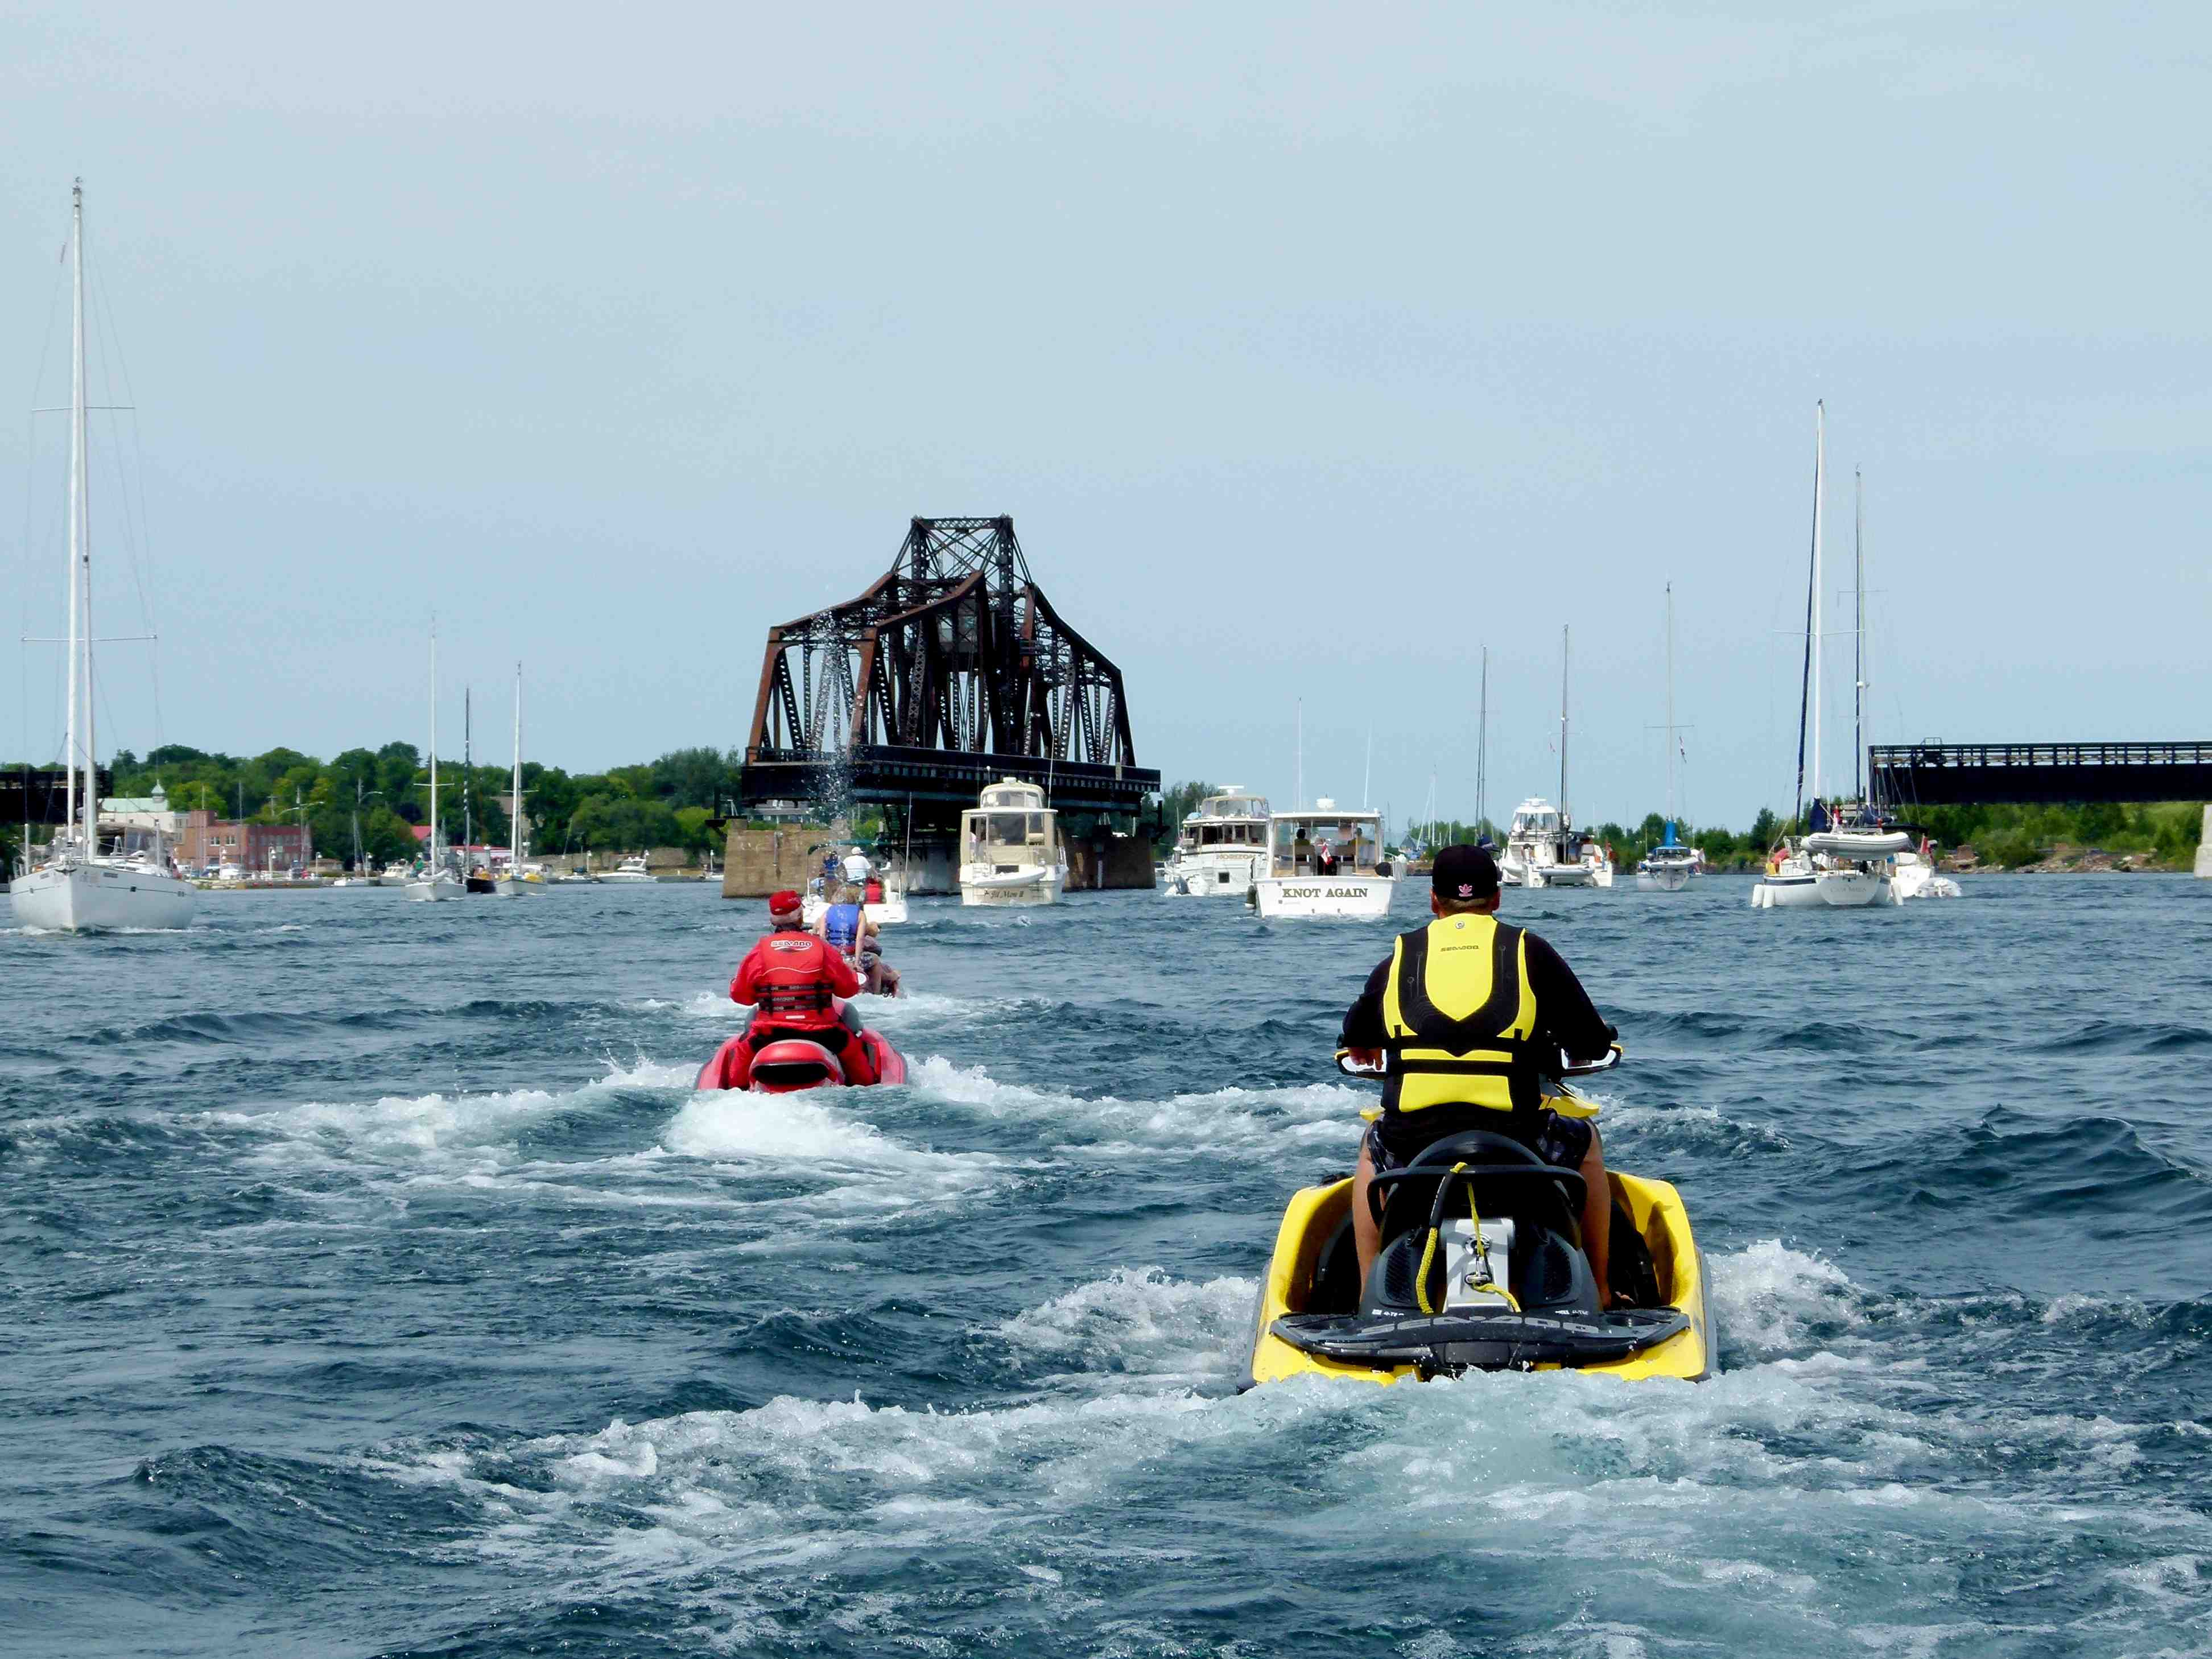 Riders approaching the swing bridge at Little Current on the North Channel Sea Doo tour